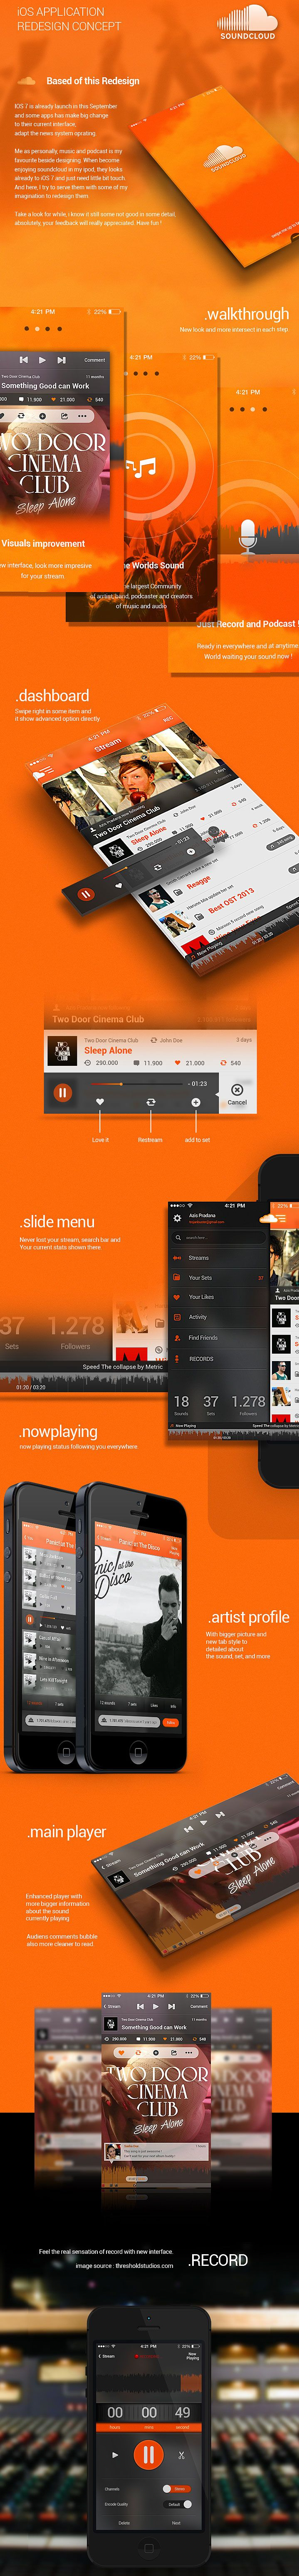 Soundcloud iOS | Redesign by Azis Pradana, via Behance *** #app #gui #ui #behance